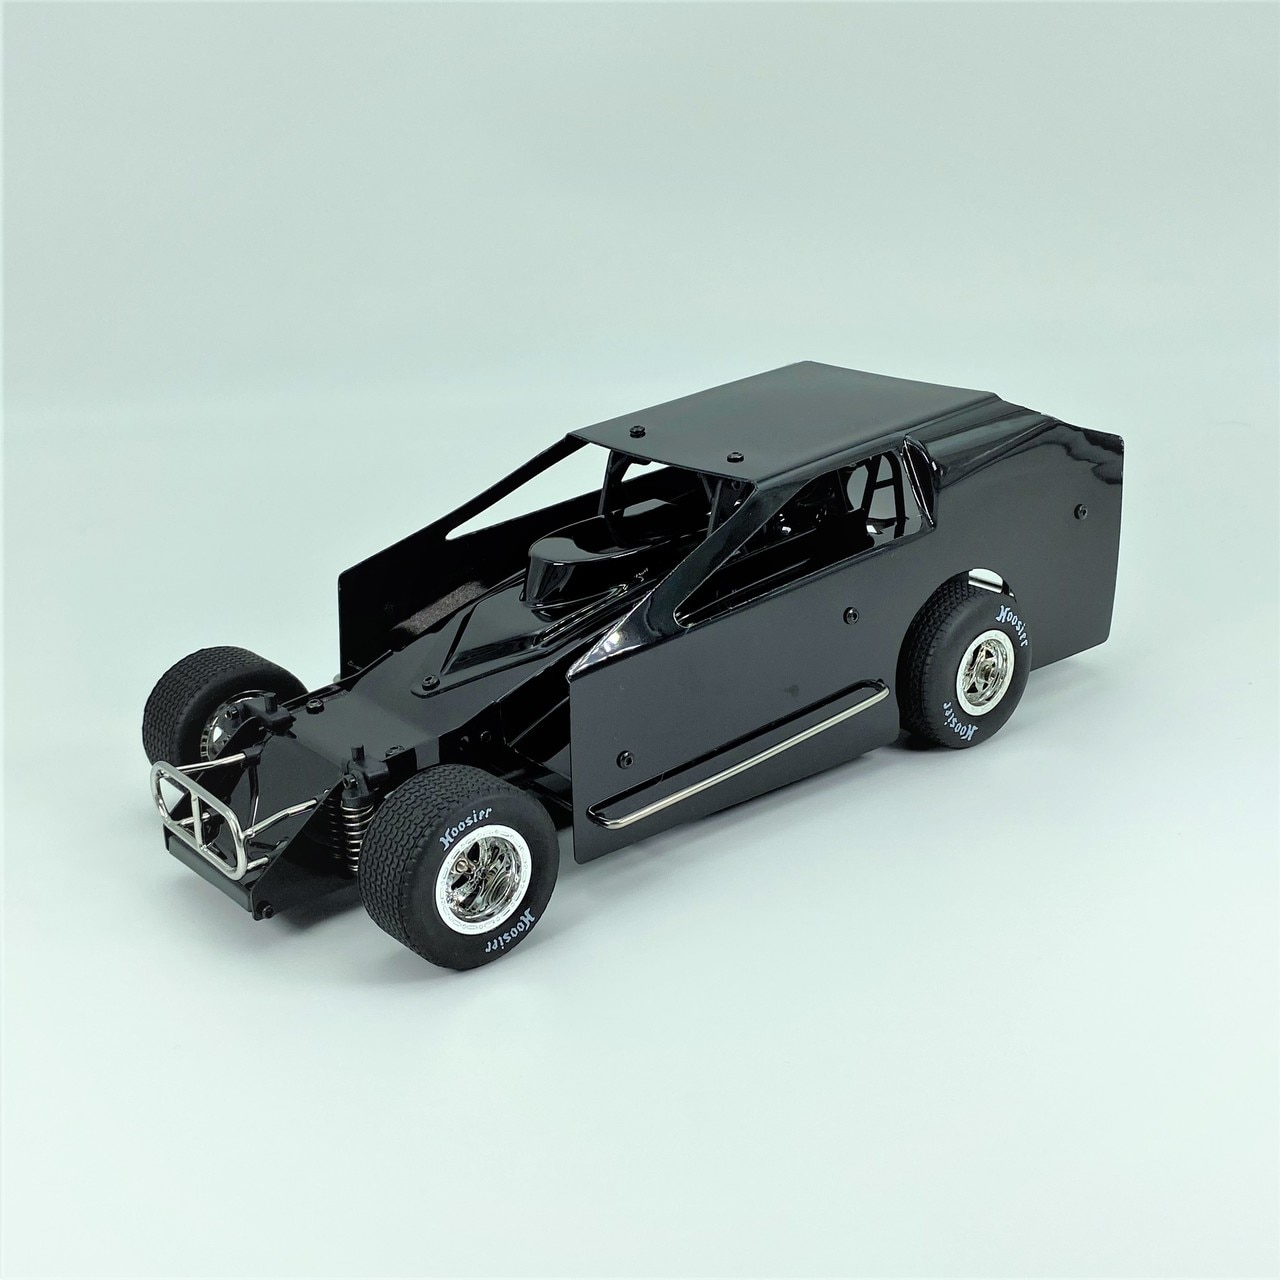 1RC Racing Releases V2 of their EDM RTR Racer